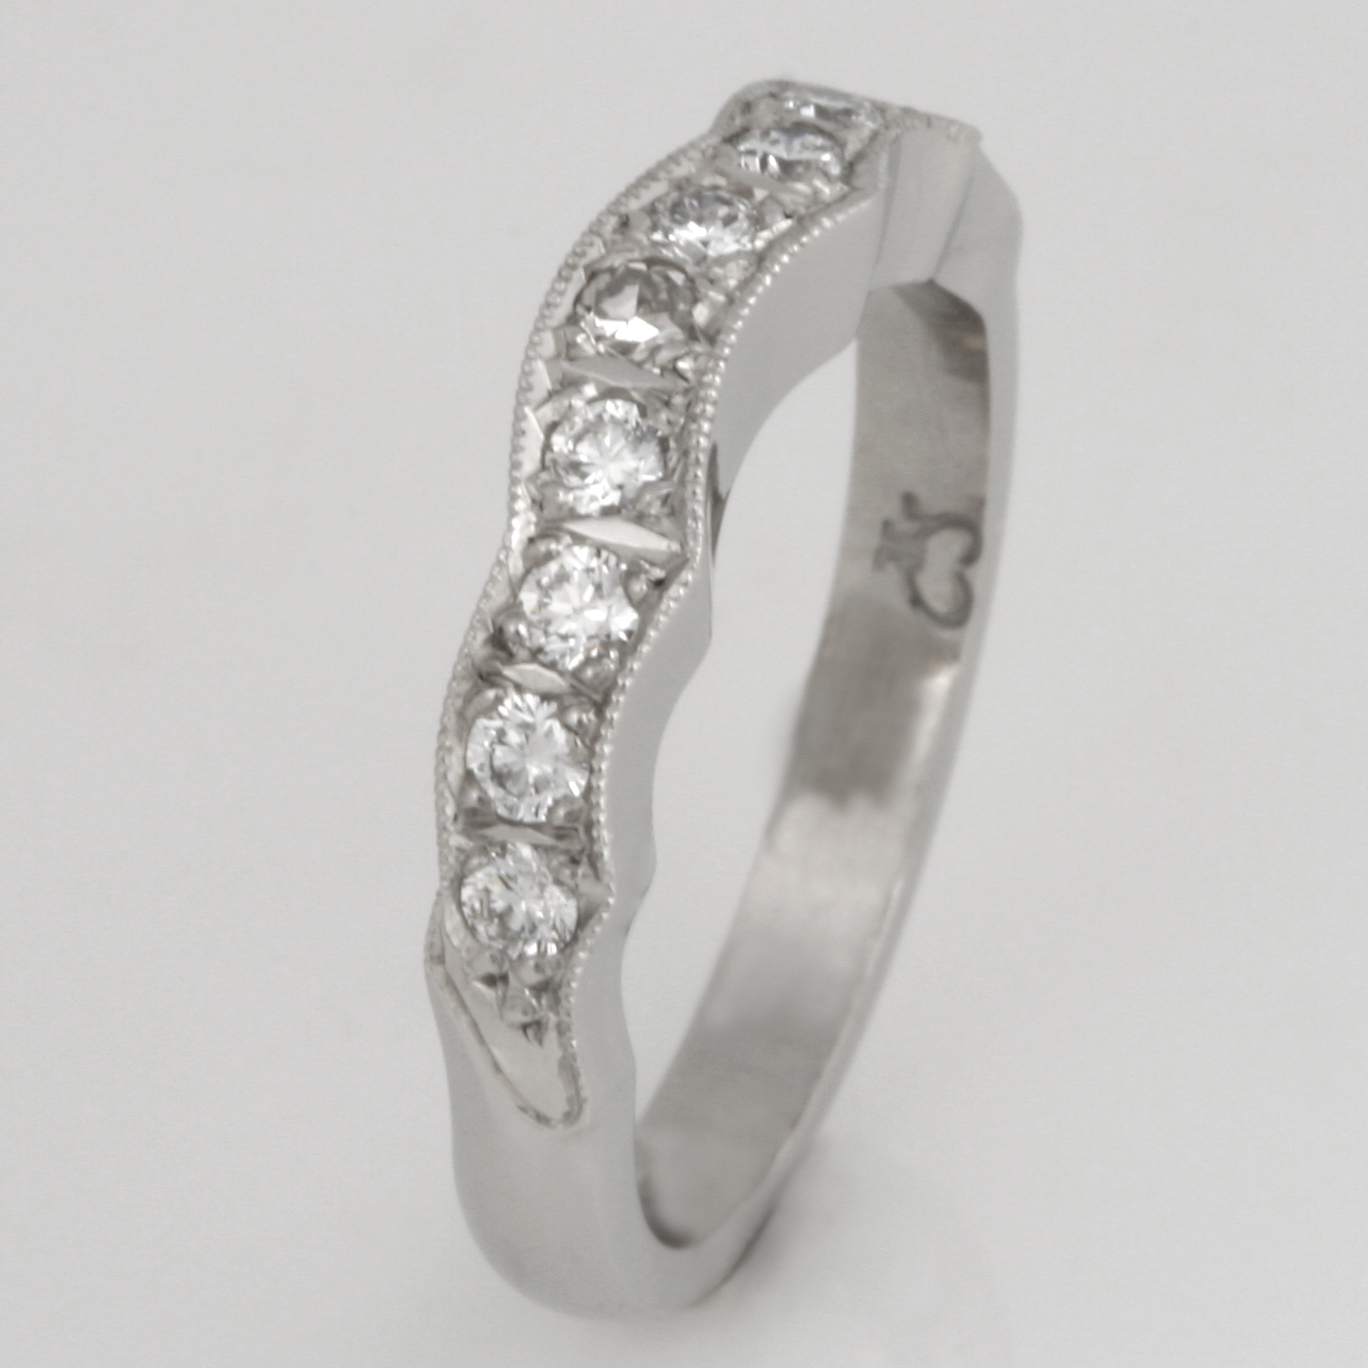 Handmade ladies palladium diamond set wedding ring